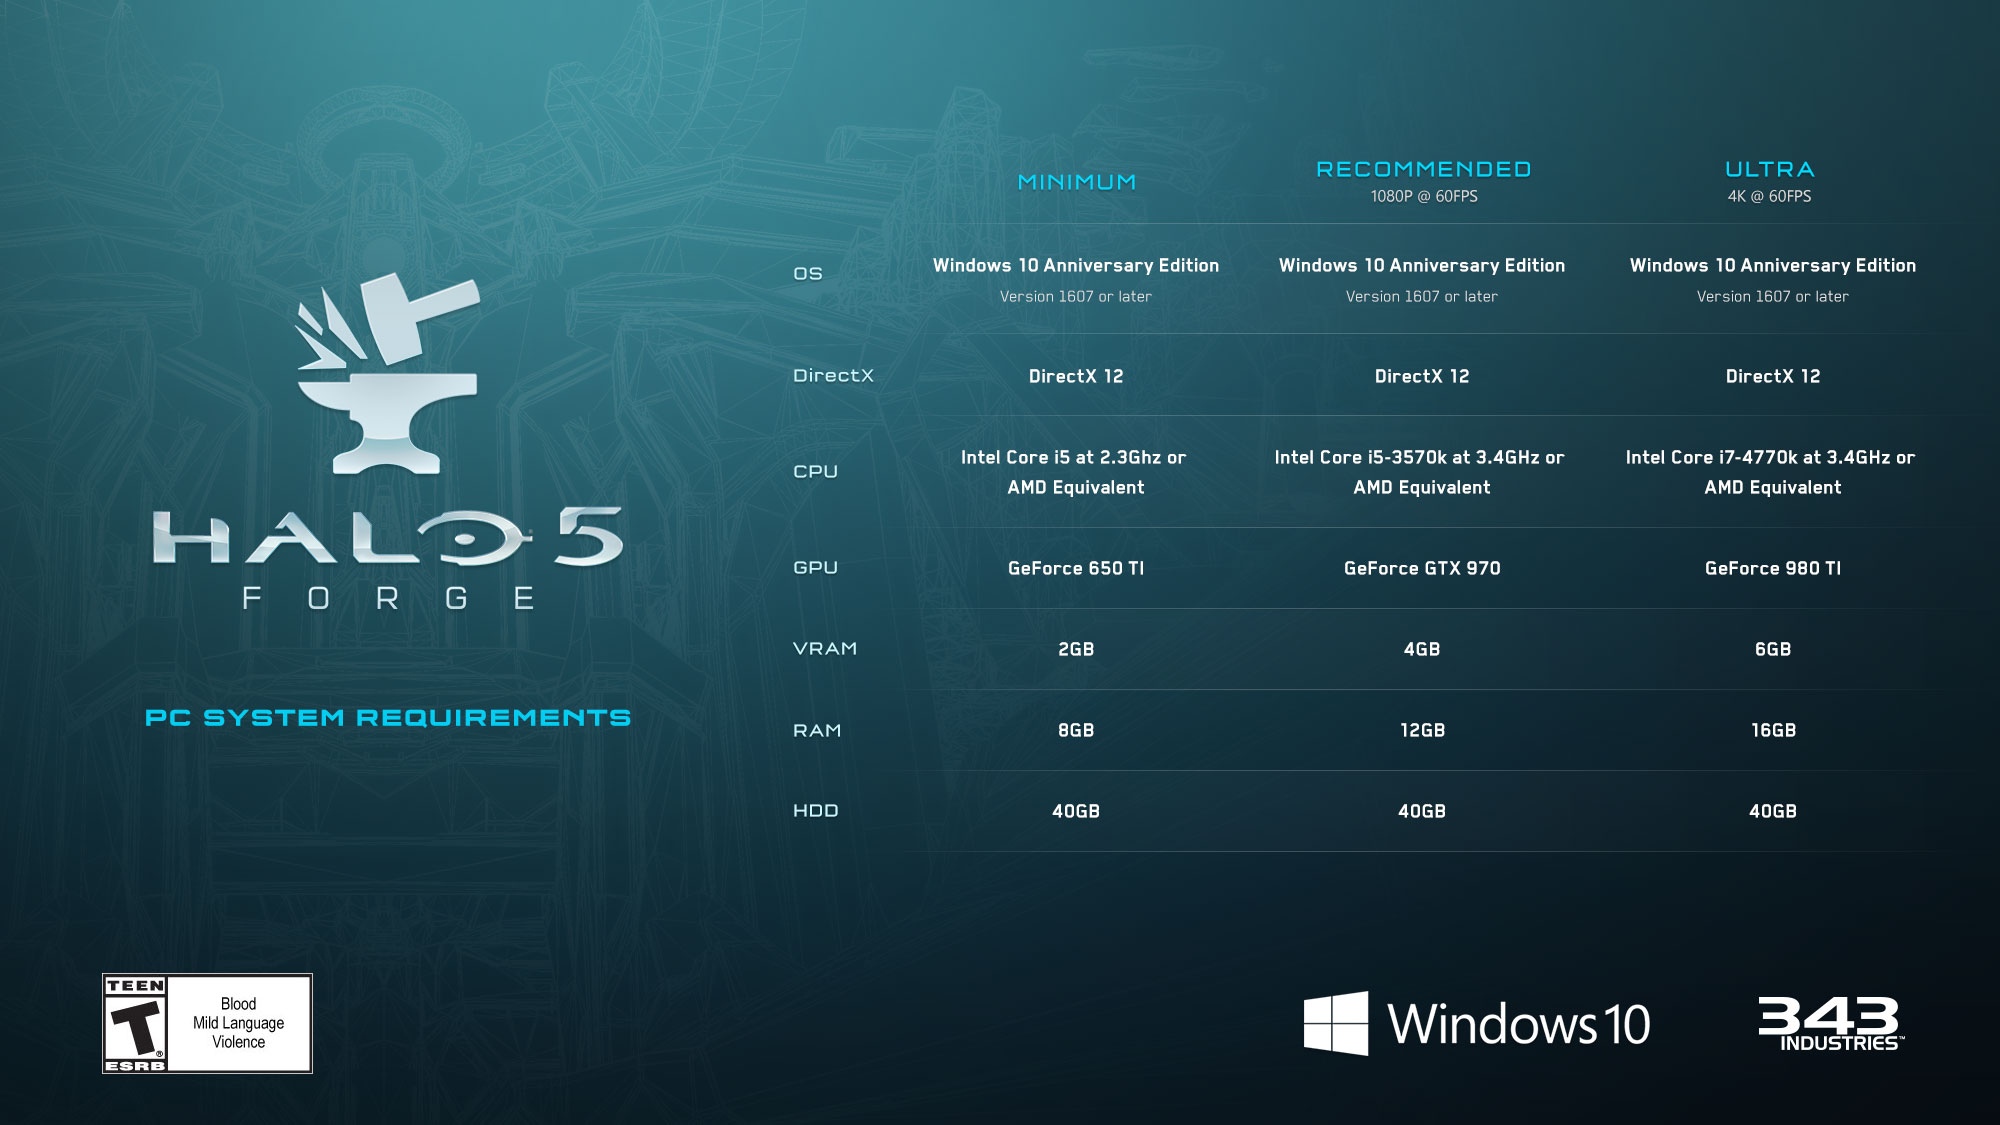 Halo Forge PC System Requirements.